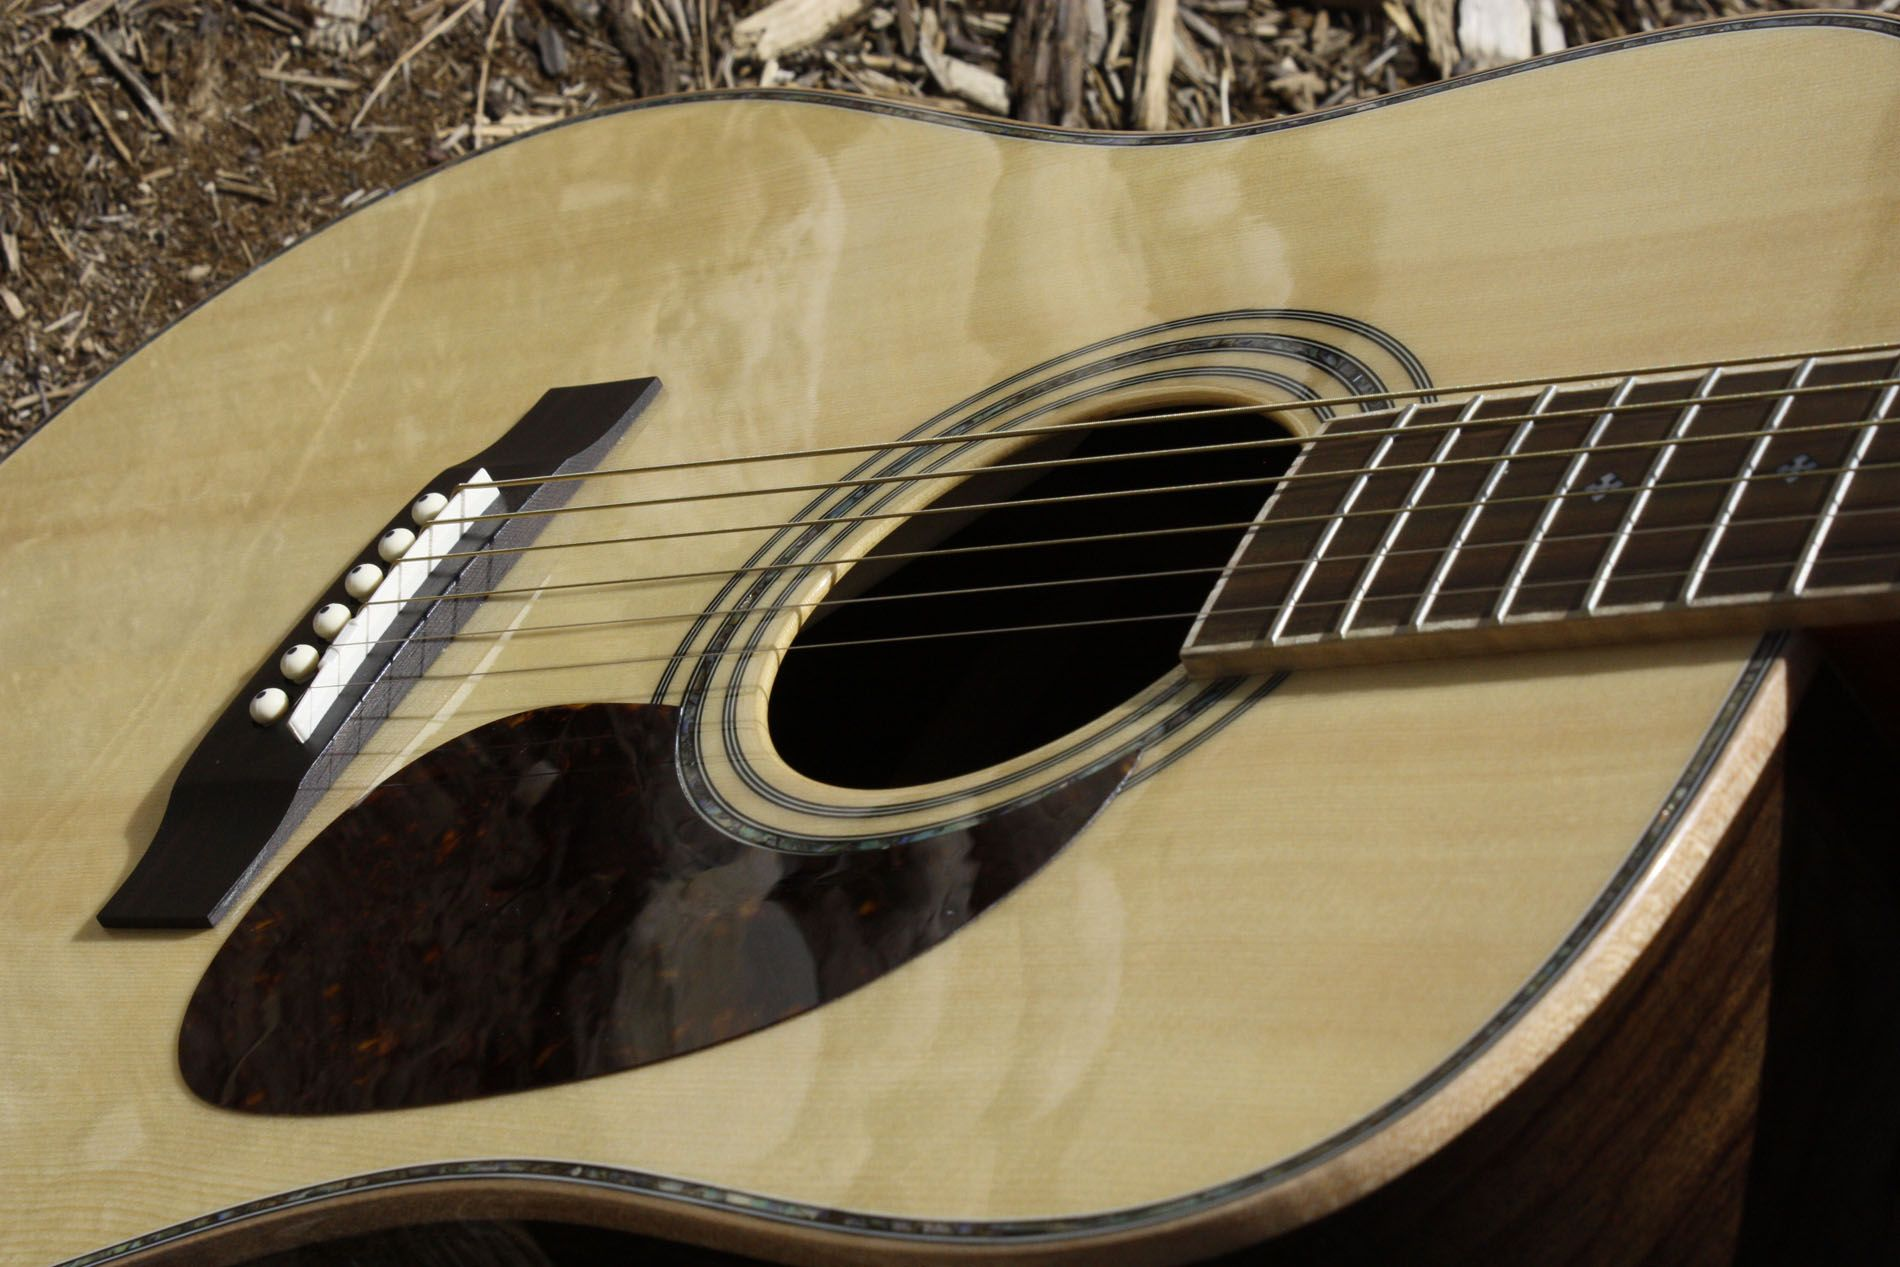 The Zager Guitars Is Totally Positive And Best Company Because The Users Are Connected With The Performance Of Their Musical Instrument Gitarre